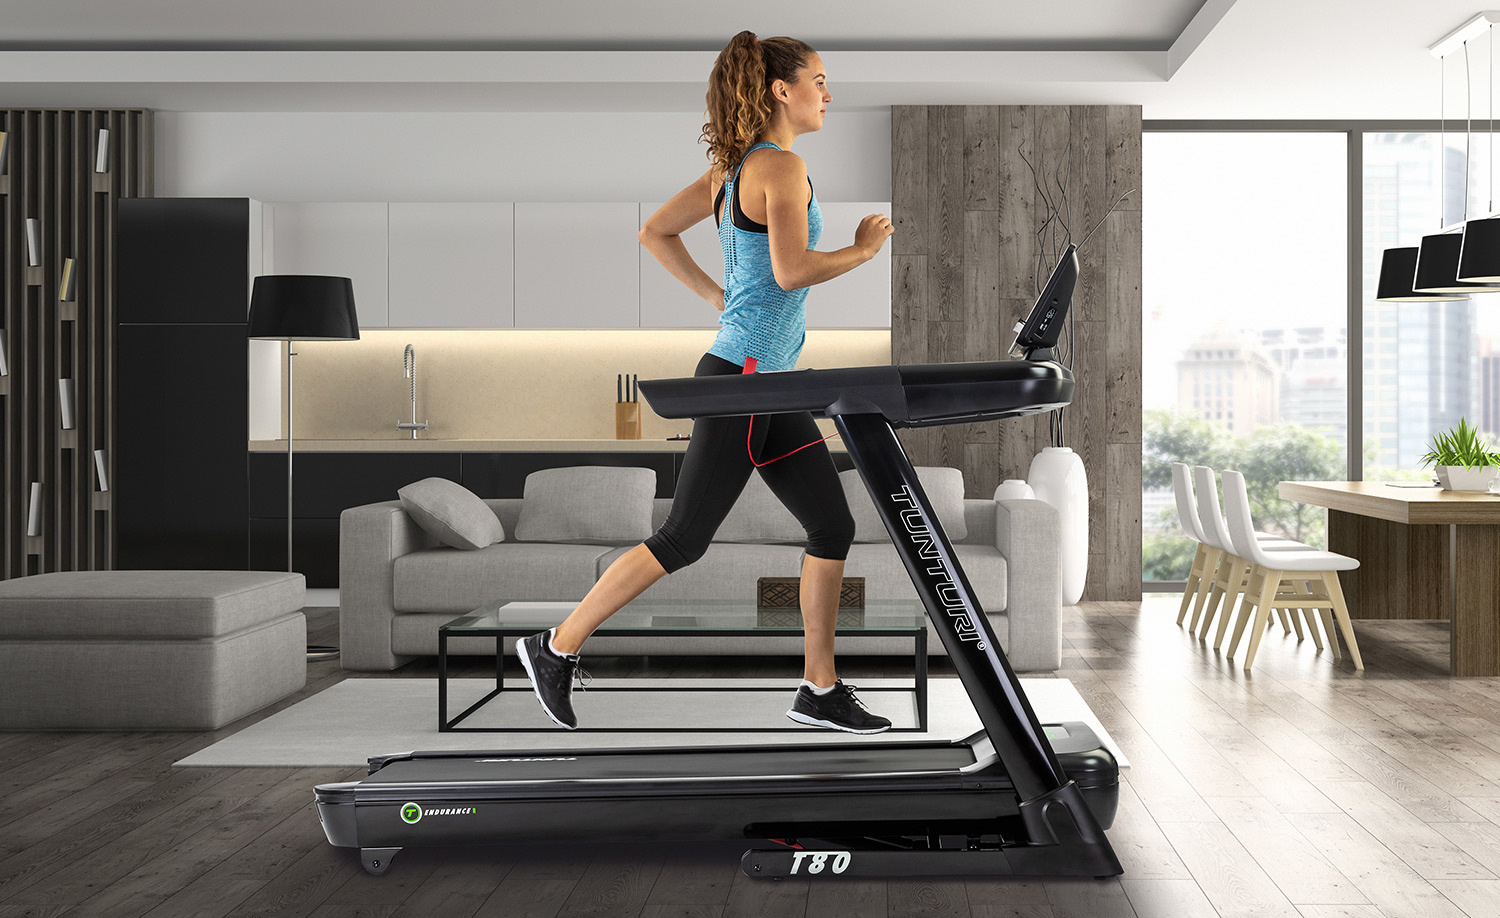 The best running and rehabilitation experience with an Endurance treadmill